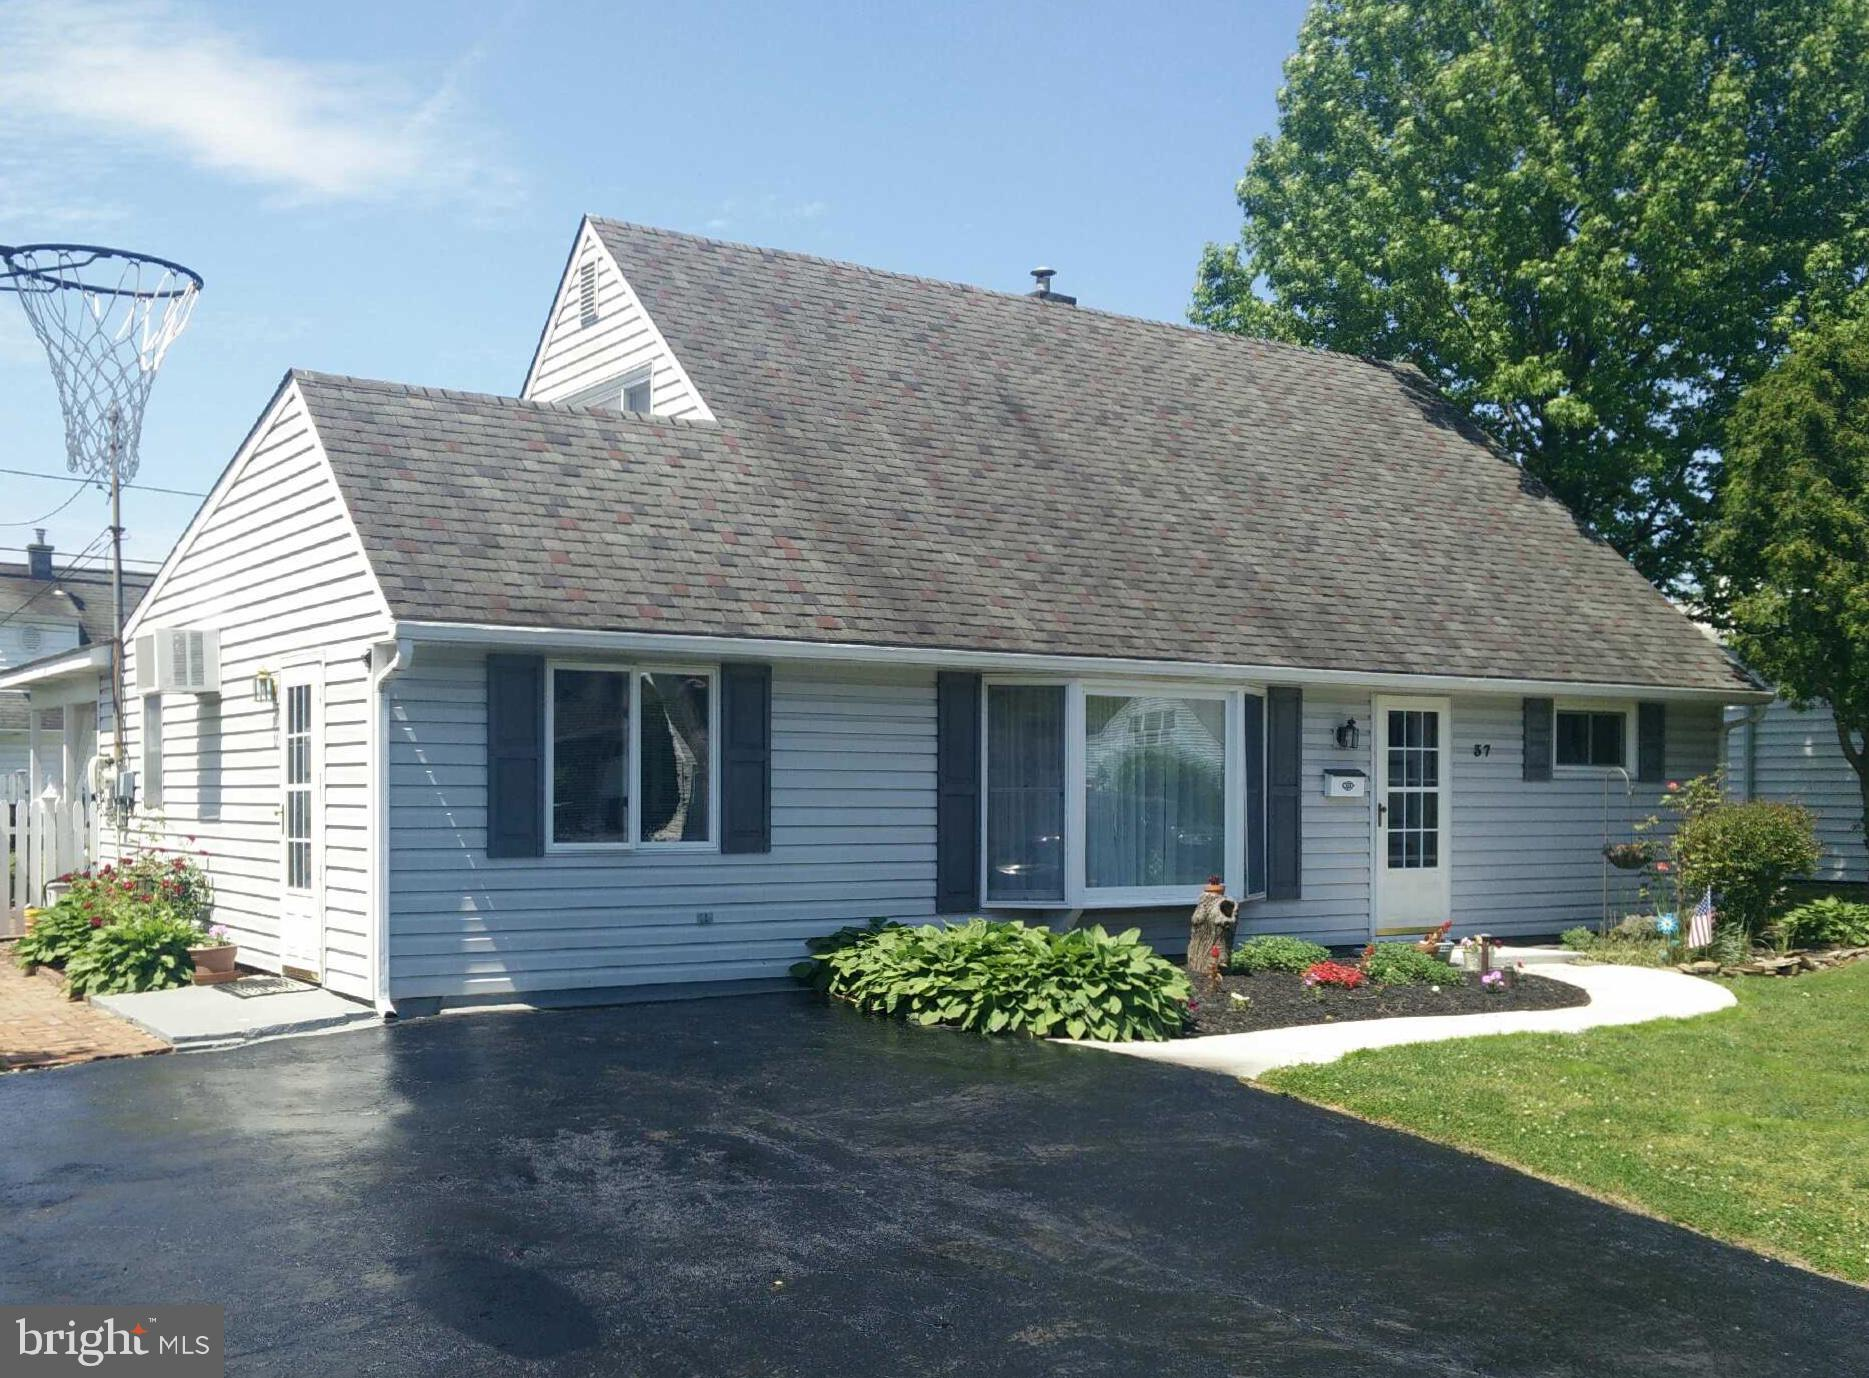 37 CLIFF ROAD, LEVITTOWN, PA 19057